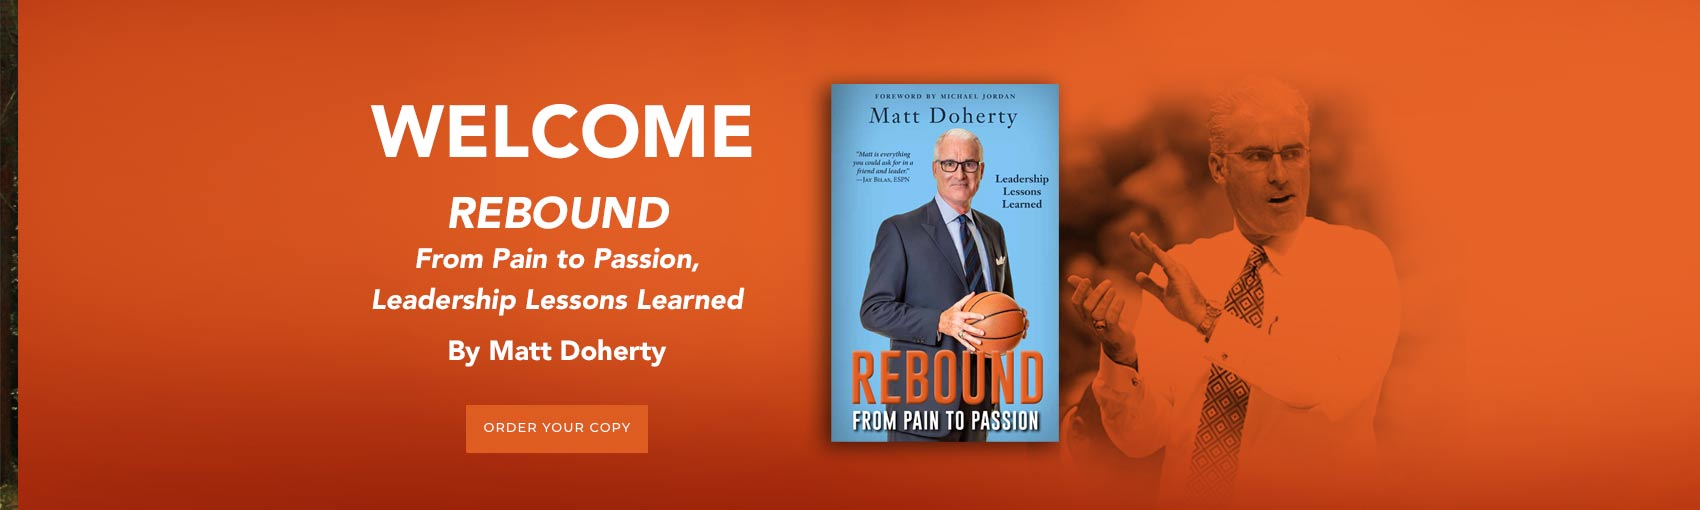 Matt Doherty REBOUND From Pain to Passion book